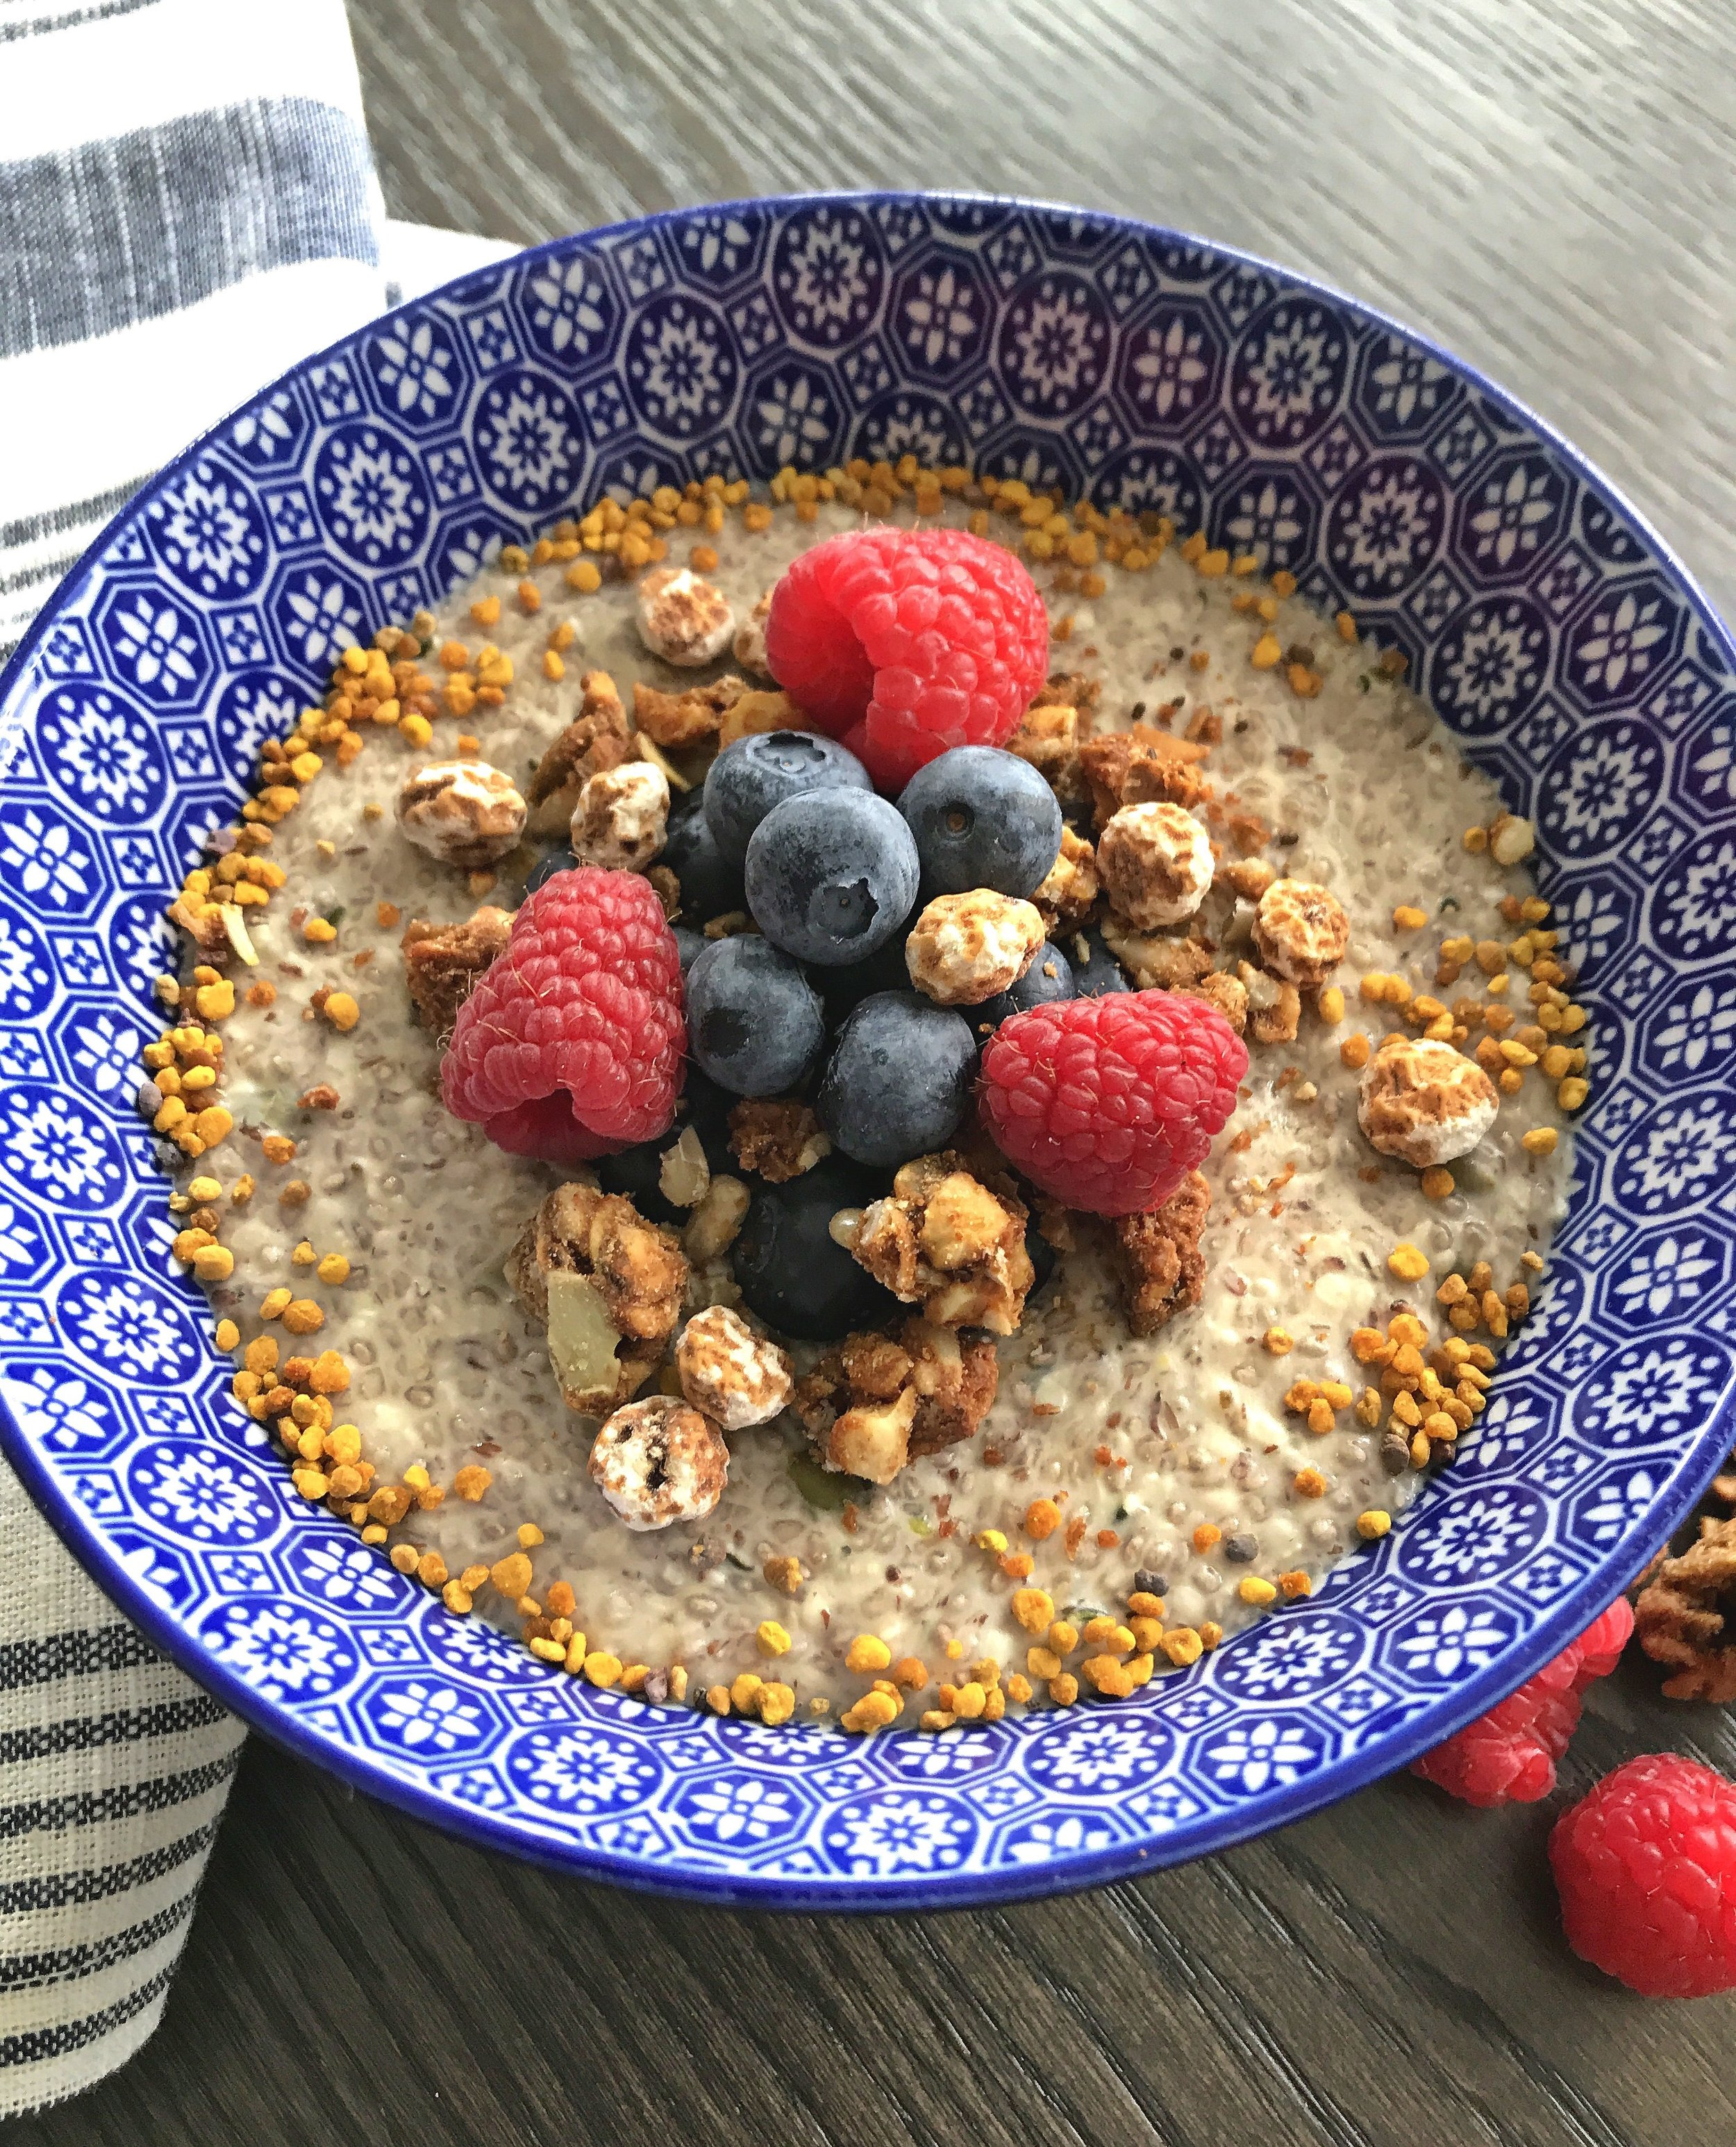 Super Seedy Protein Porridge topped with fresh berries, granola, peeled tiger nuts, and bee pollen.